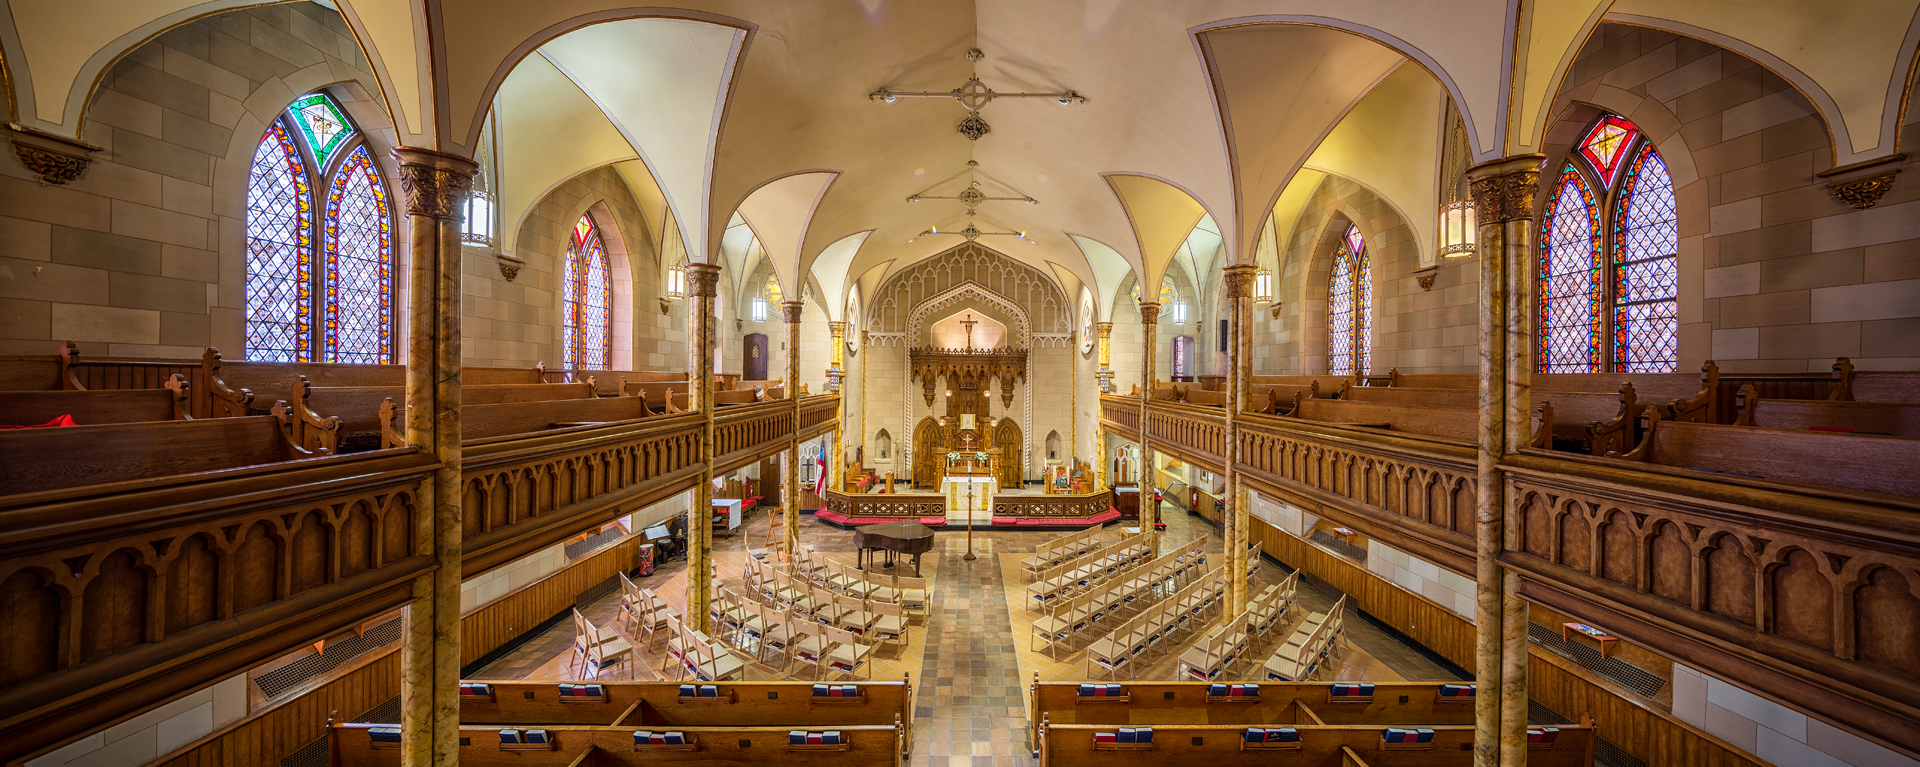 The Two Saints Sanctuary, as seen from the organ loft. Photo by Dave Braitsch.